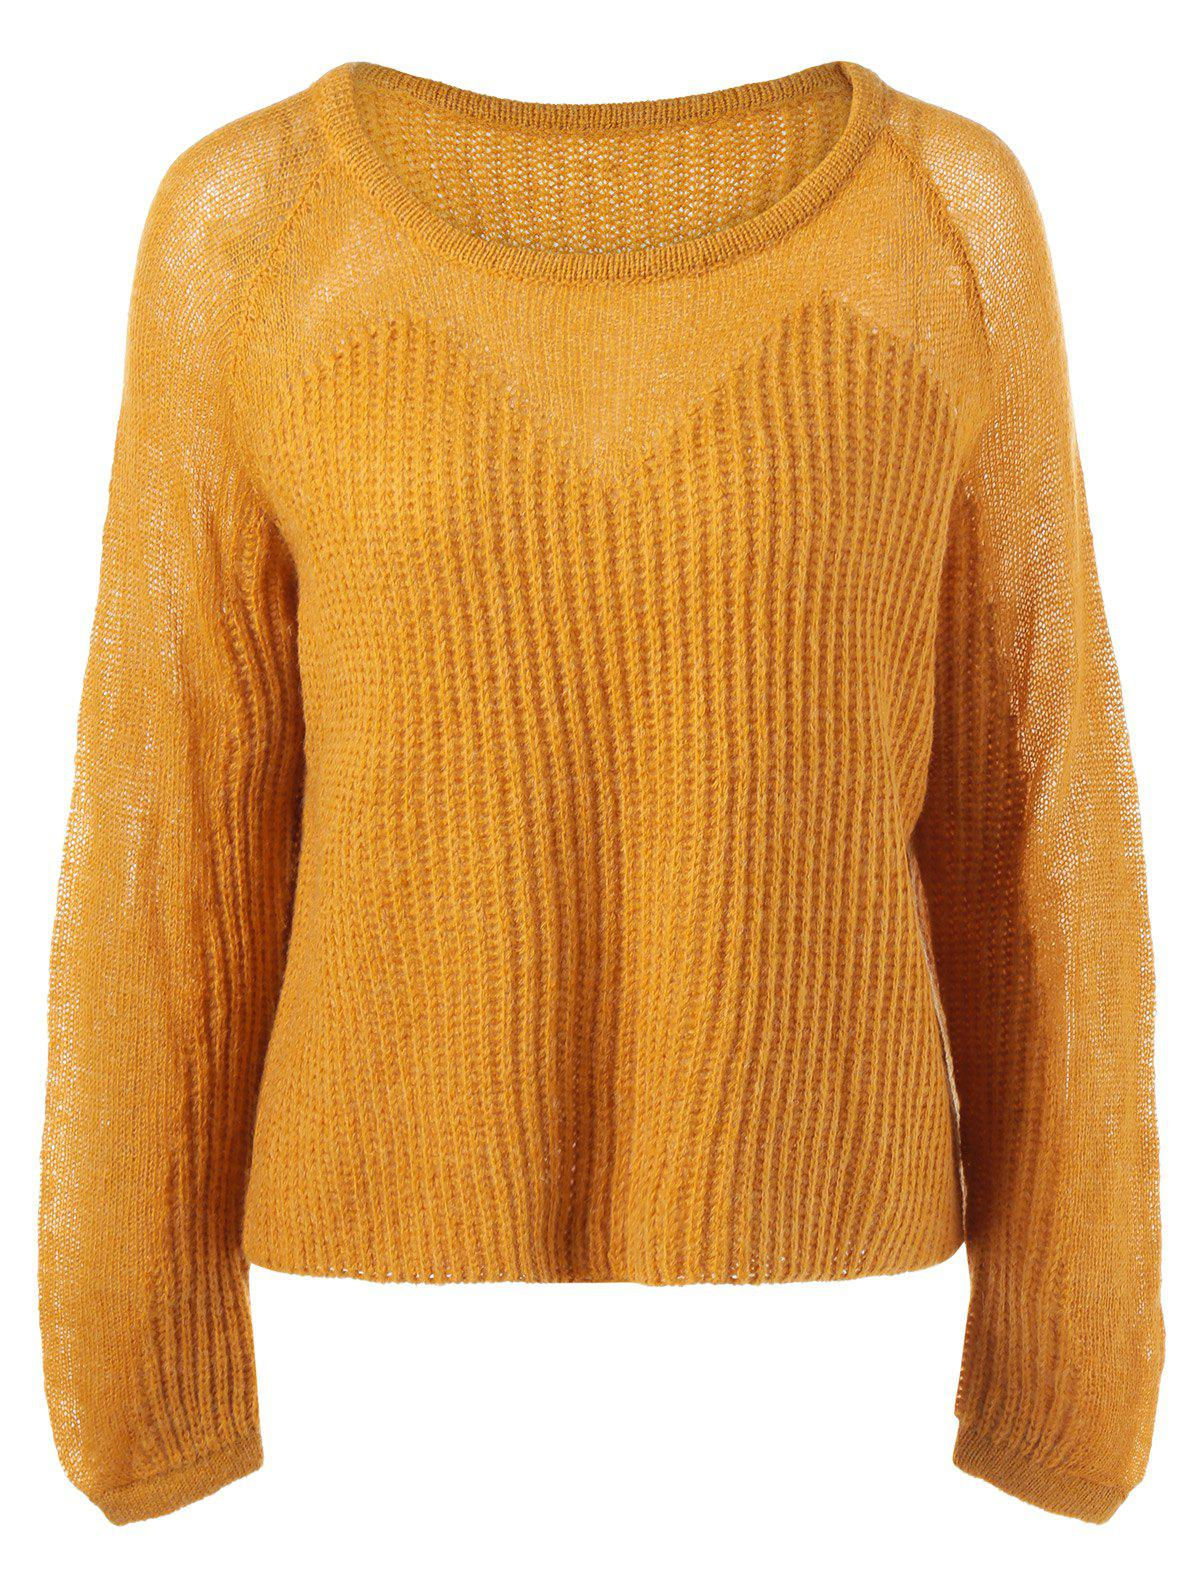 Pullover Long Sleeve Knitwear - YELLOW ONE SIZE